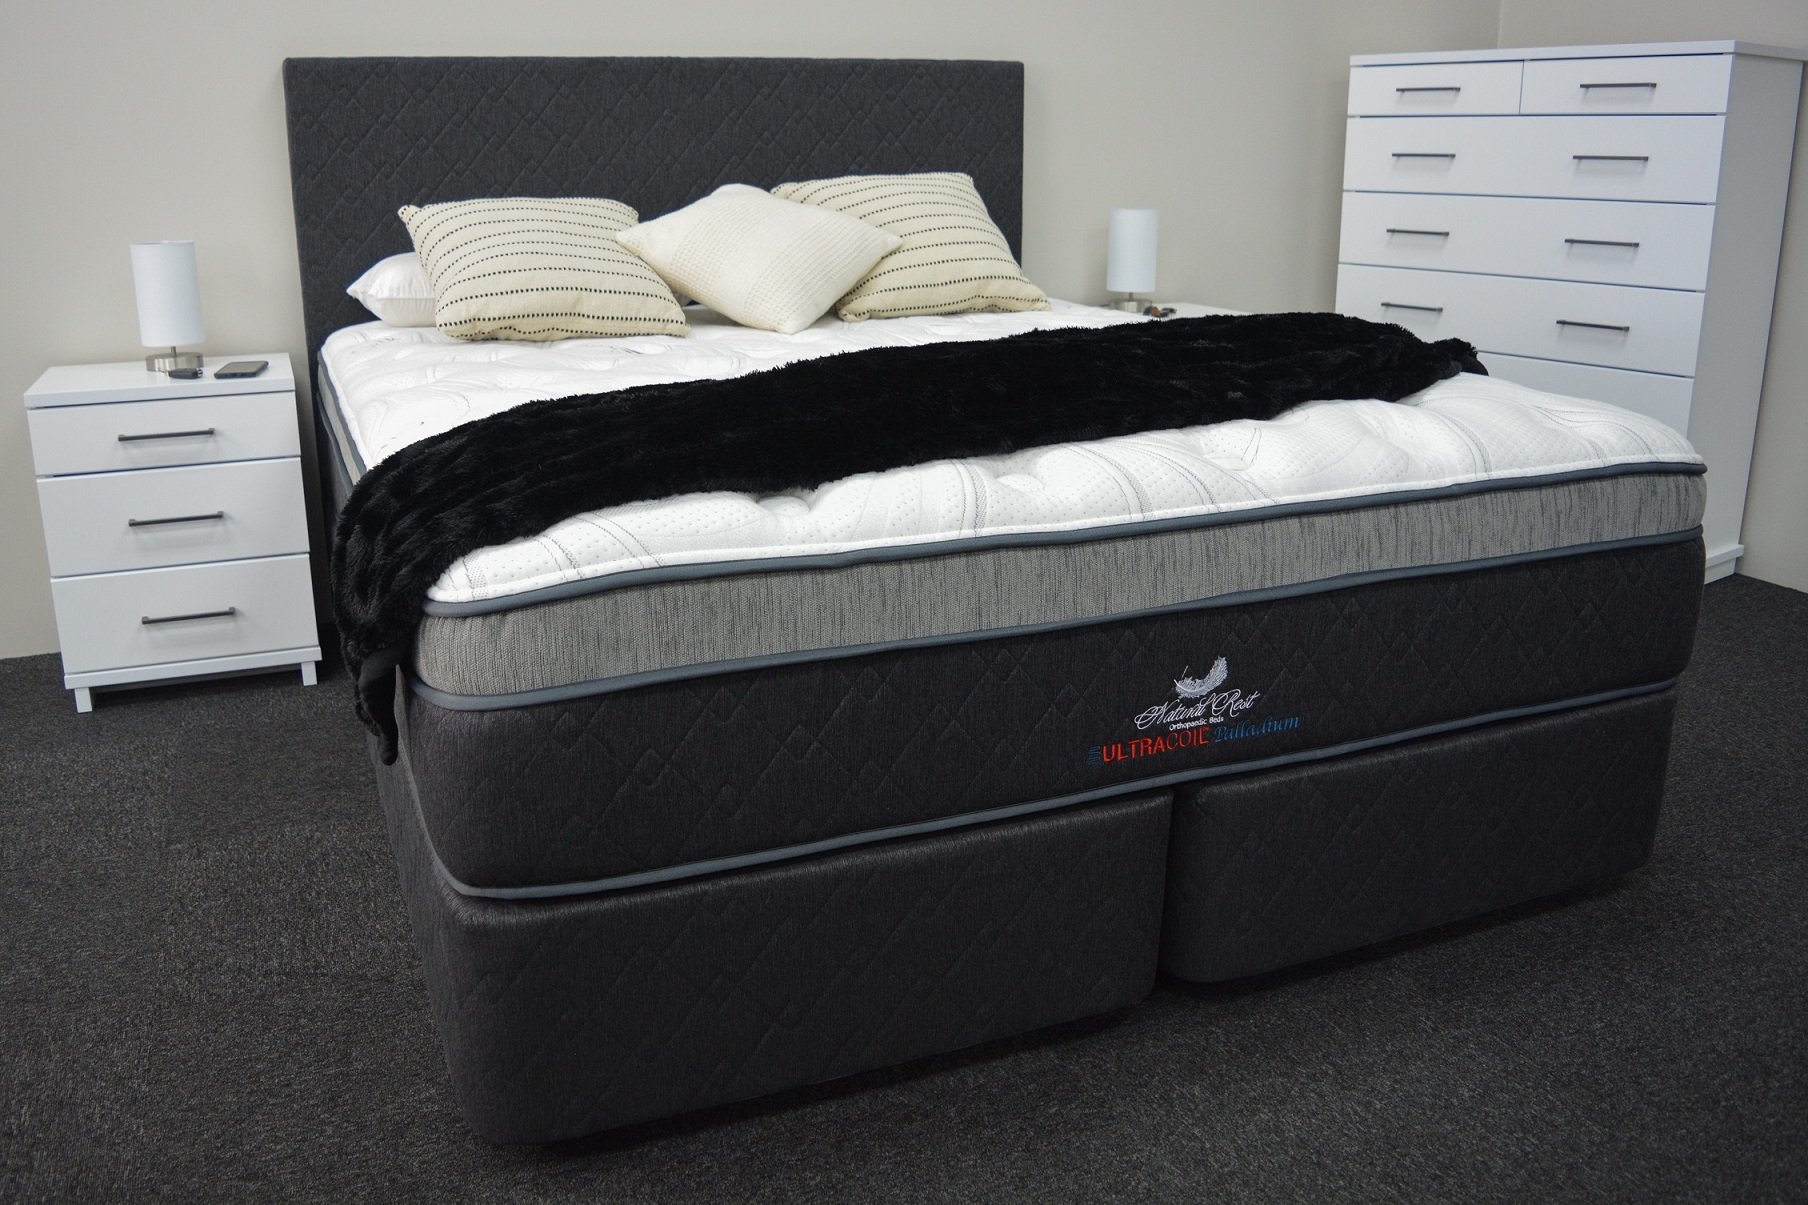 Picture of Bed